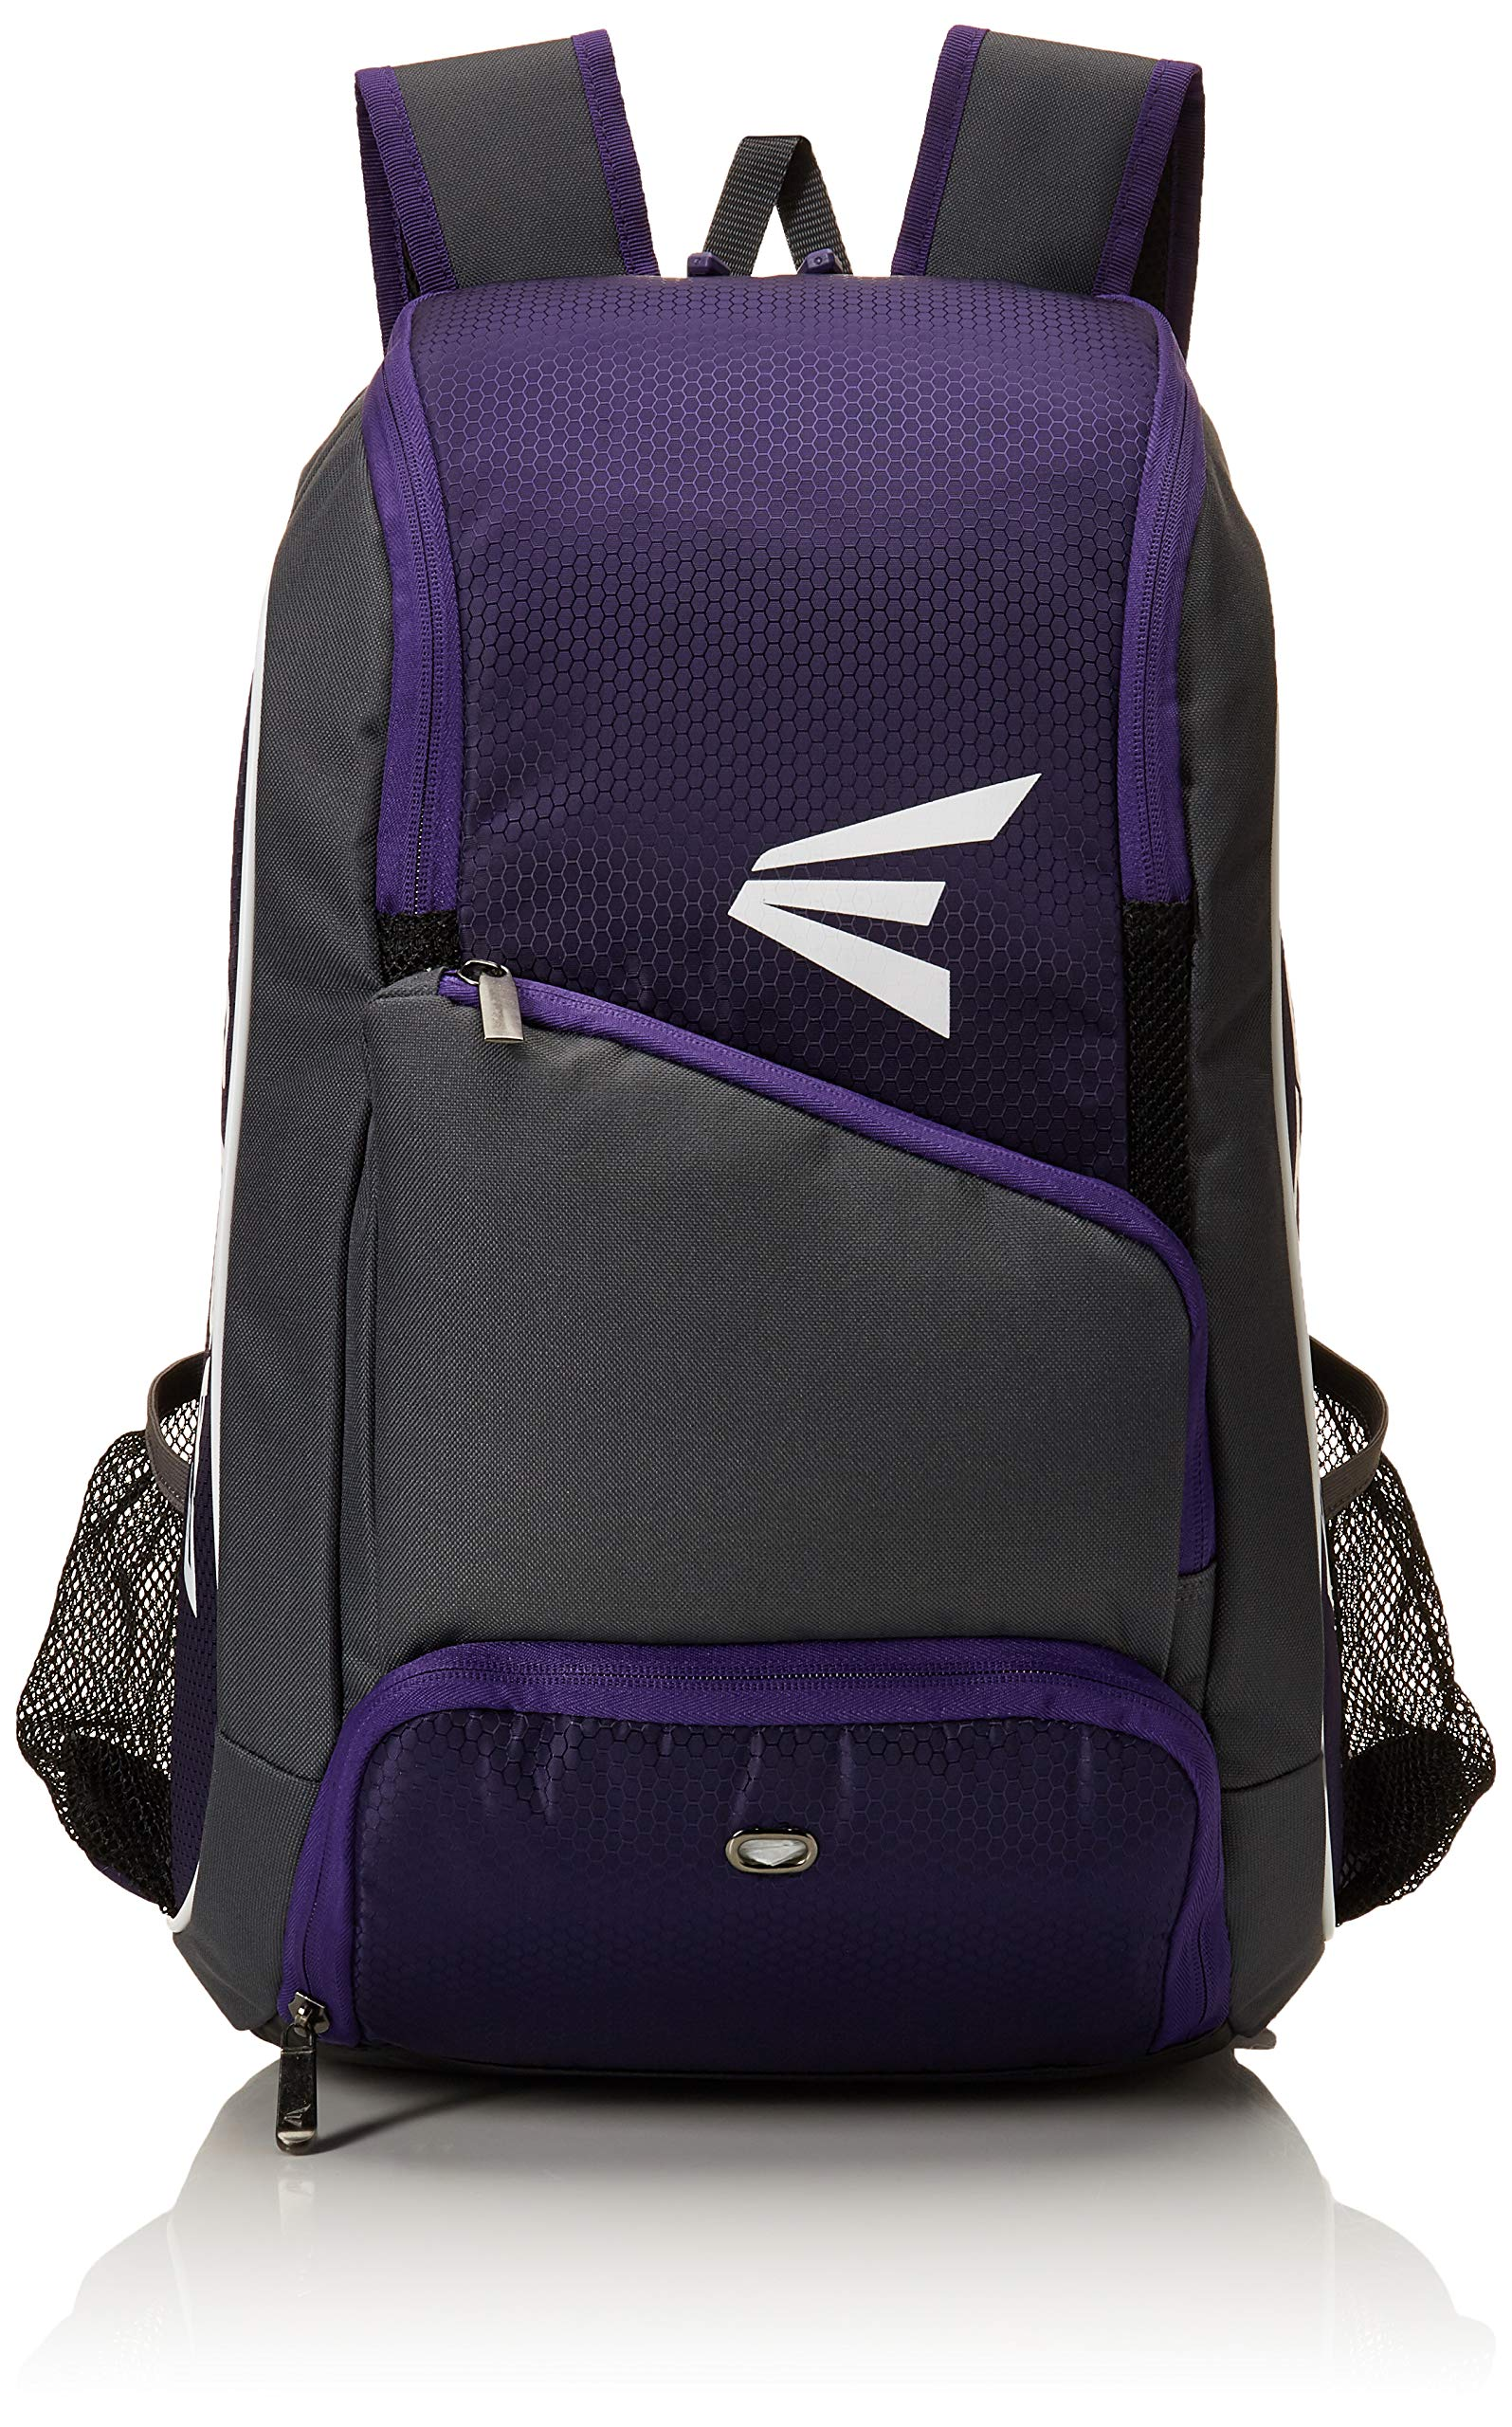 EASTON GAME READY Bat & Equipment Backpack Bag | Baseball Softball | 2019 | Purple | 2 Bat Pockets | Vented Main Compartment | Vented Shoe Pocket | Zippered Valuables Pocket | Fence Hook by Easton